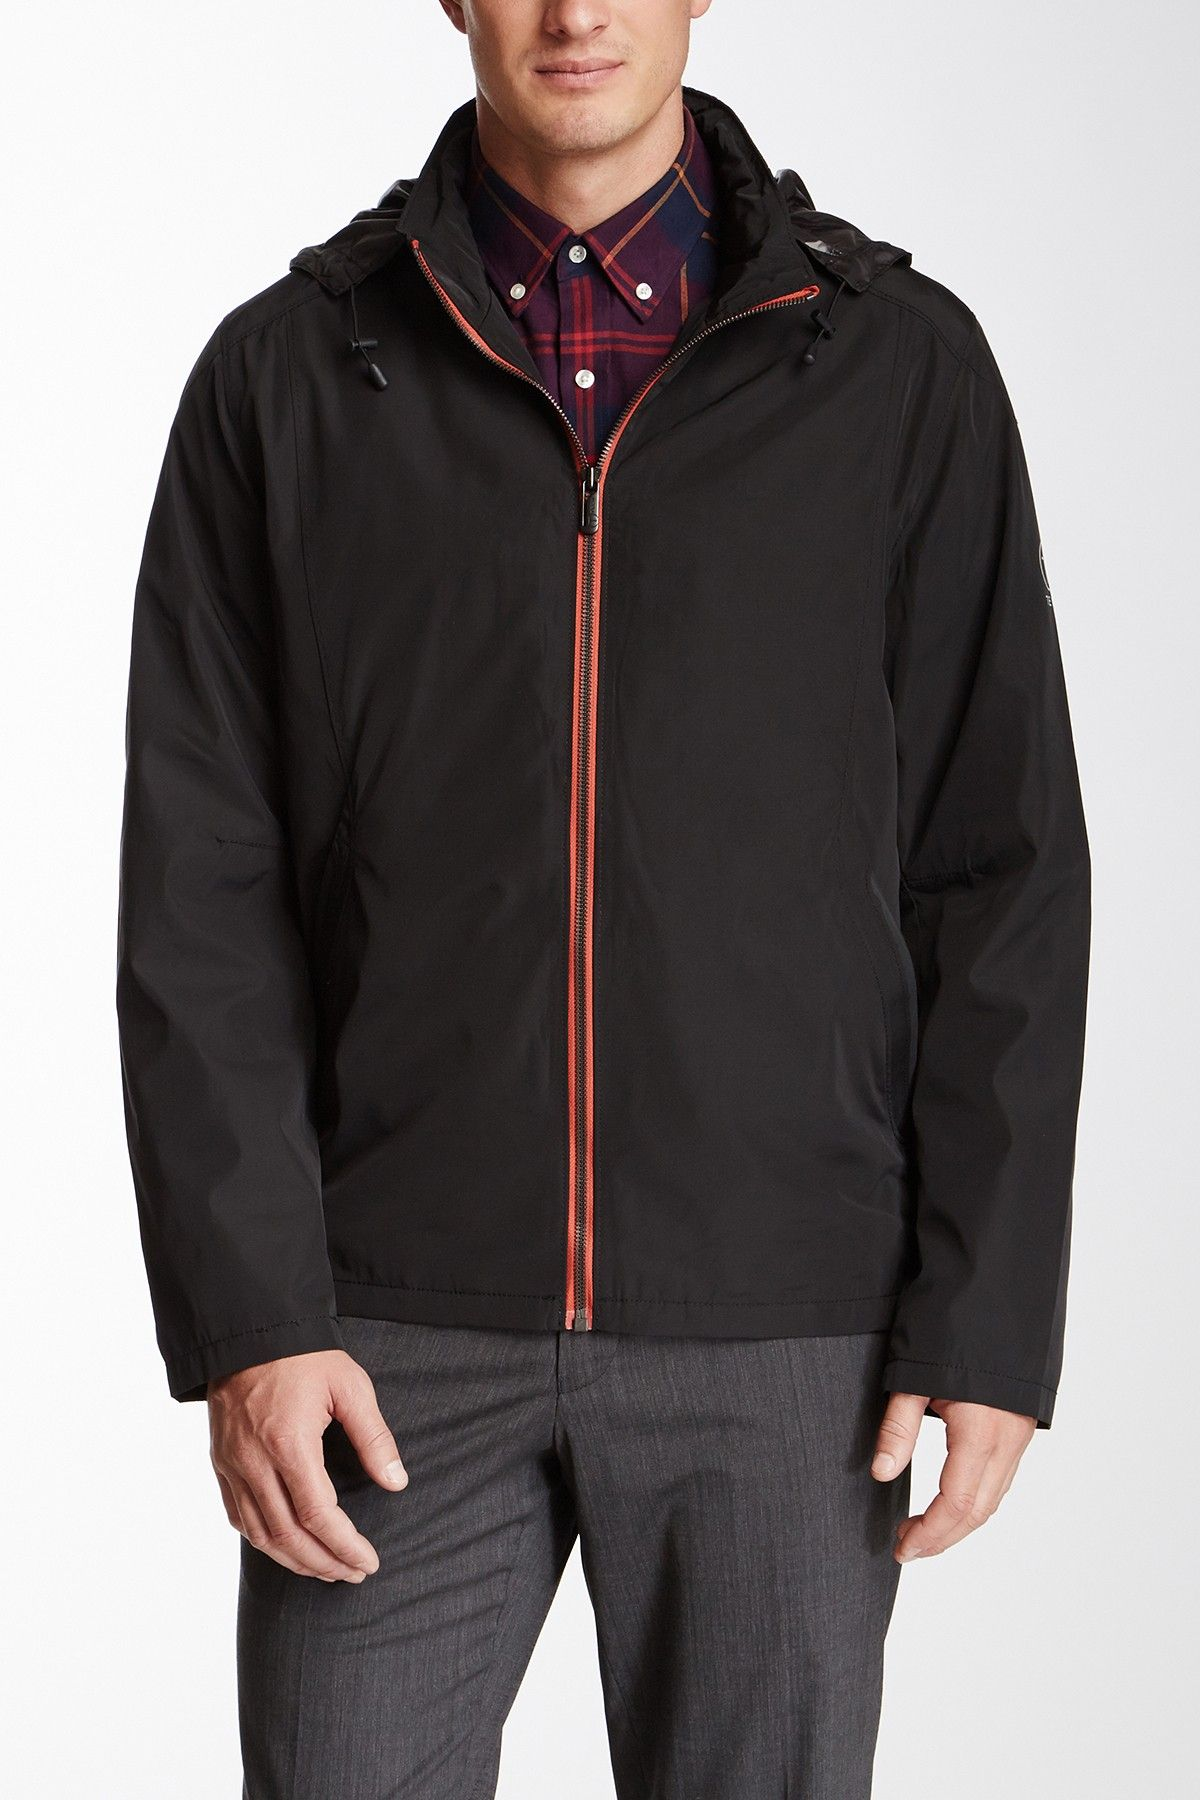 T Tech By Tumi Hipster Packable Waterproof Jacket Jacket